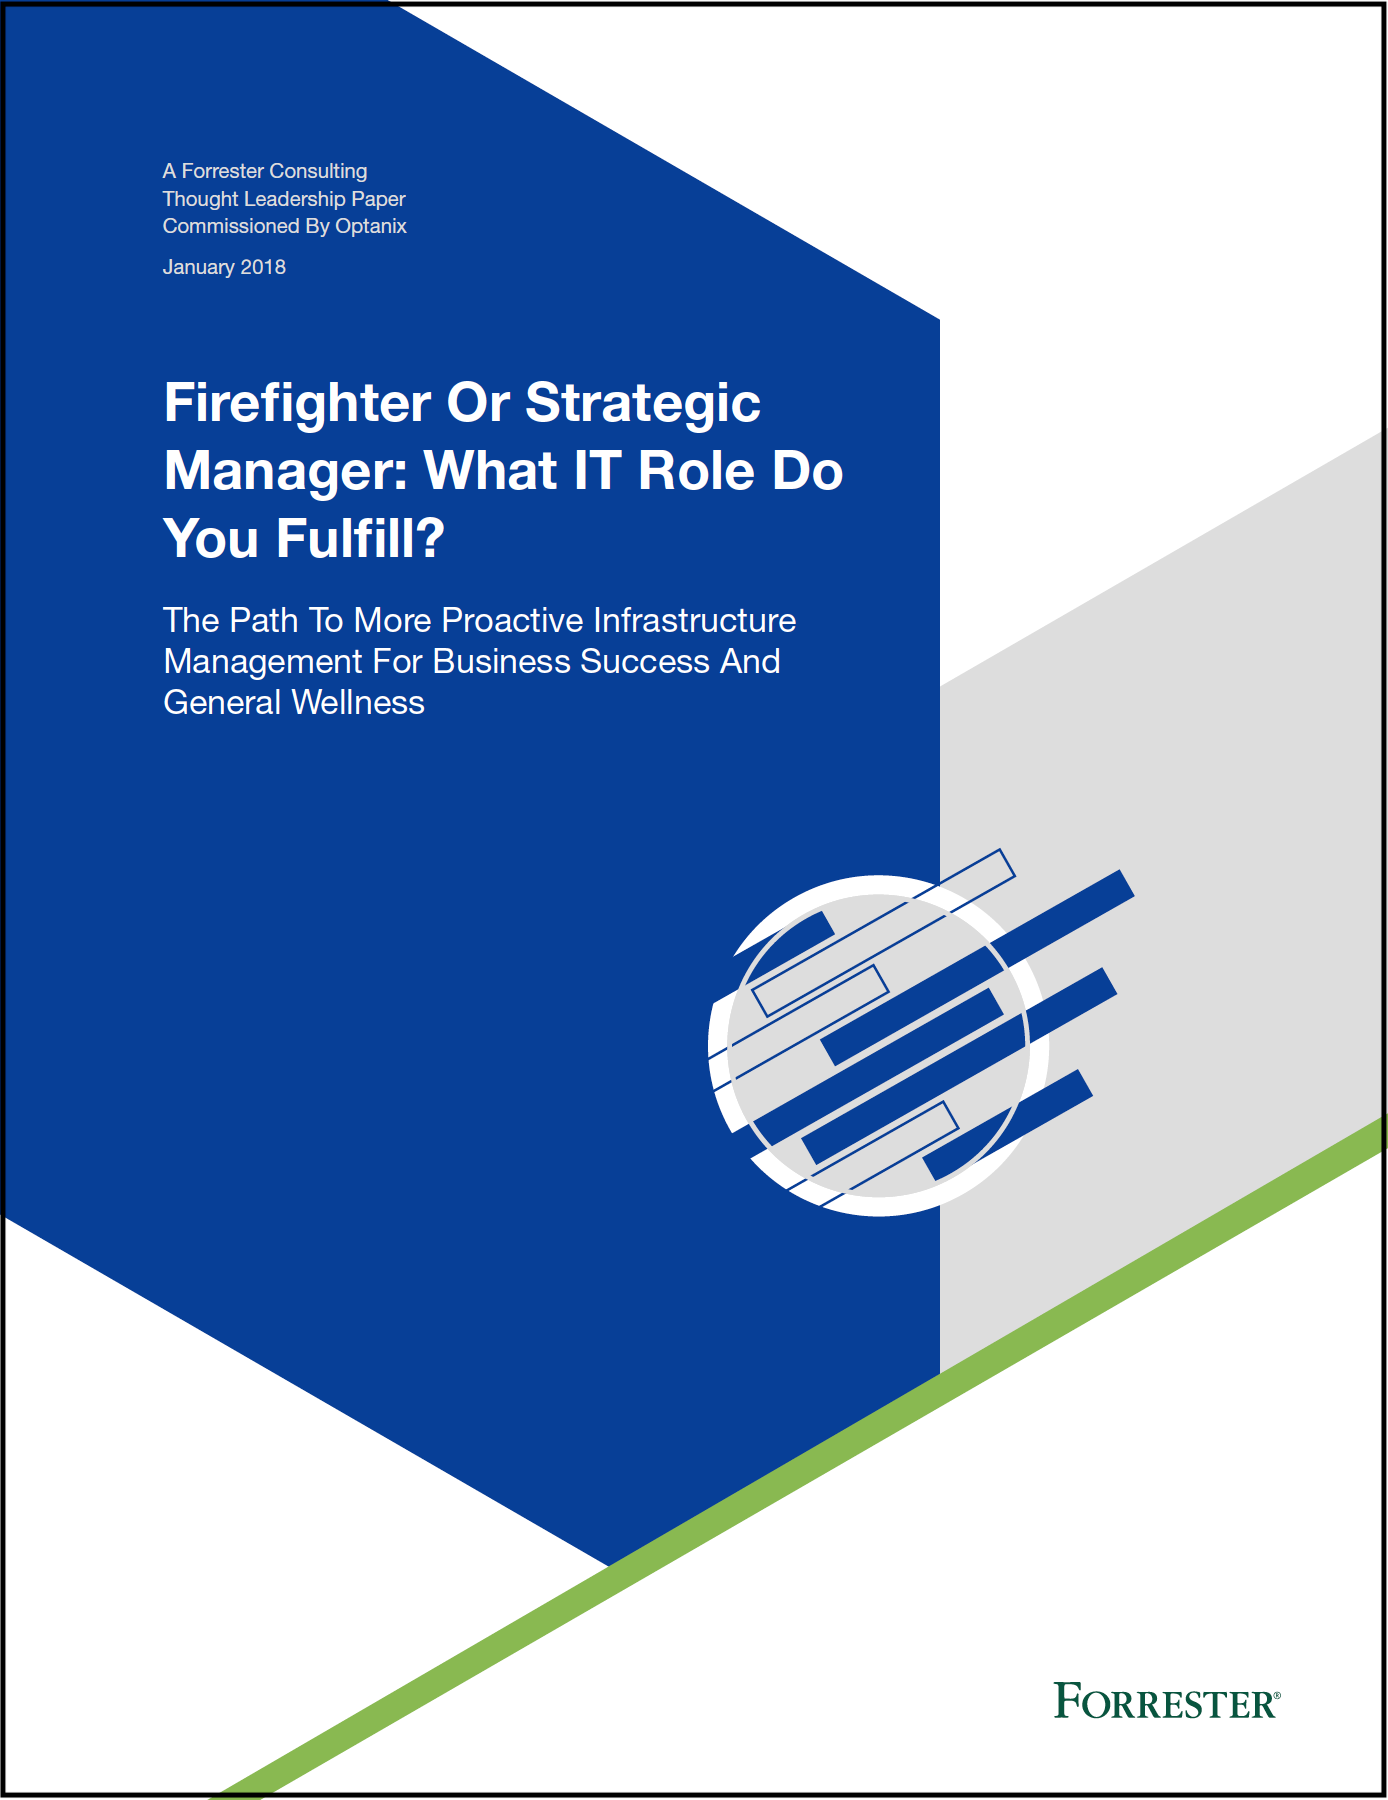 Forrester Thought Leadership Paper Cover Page_border.png